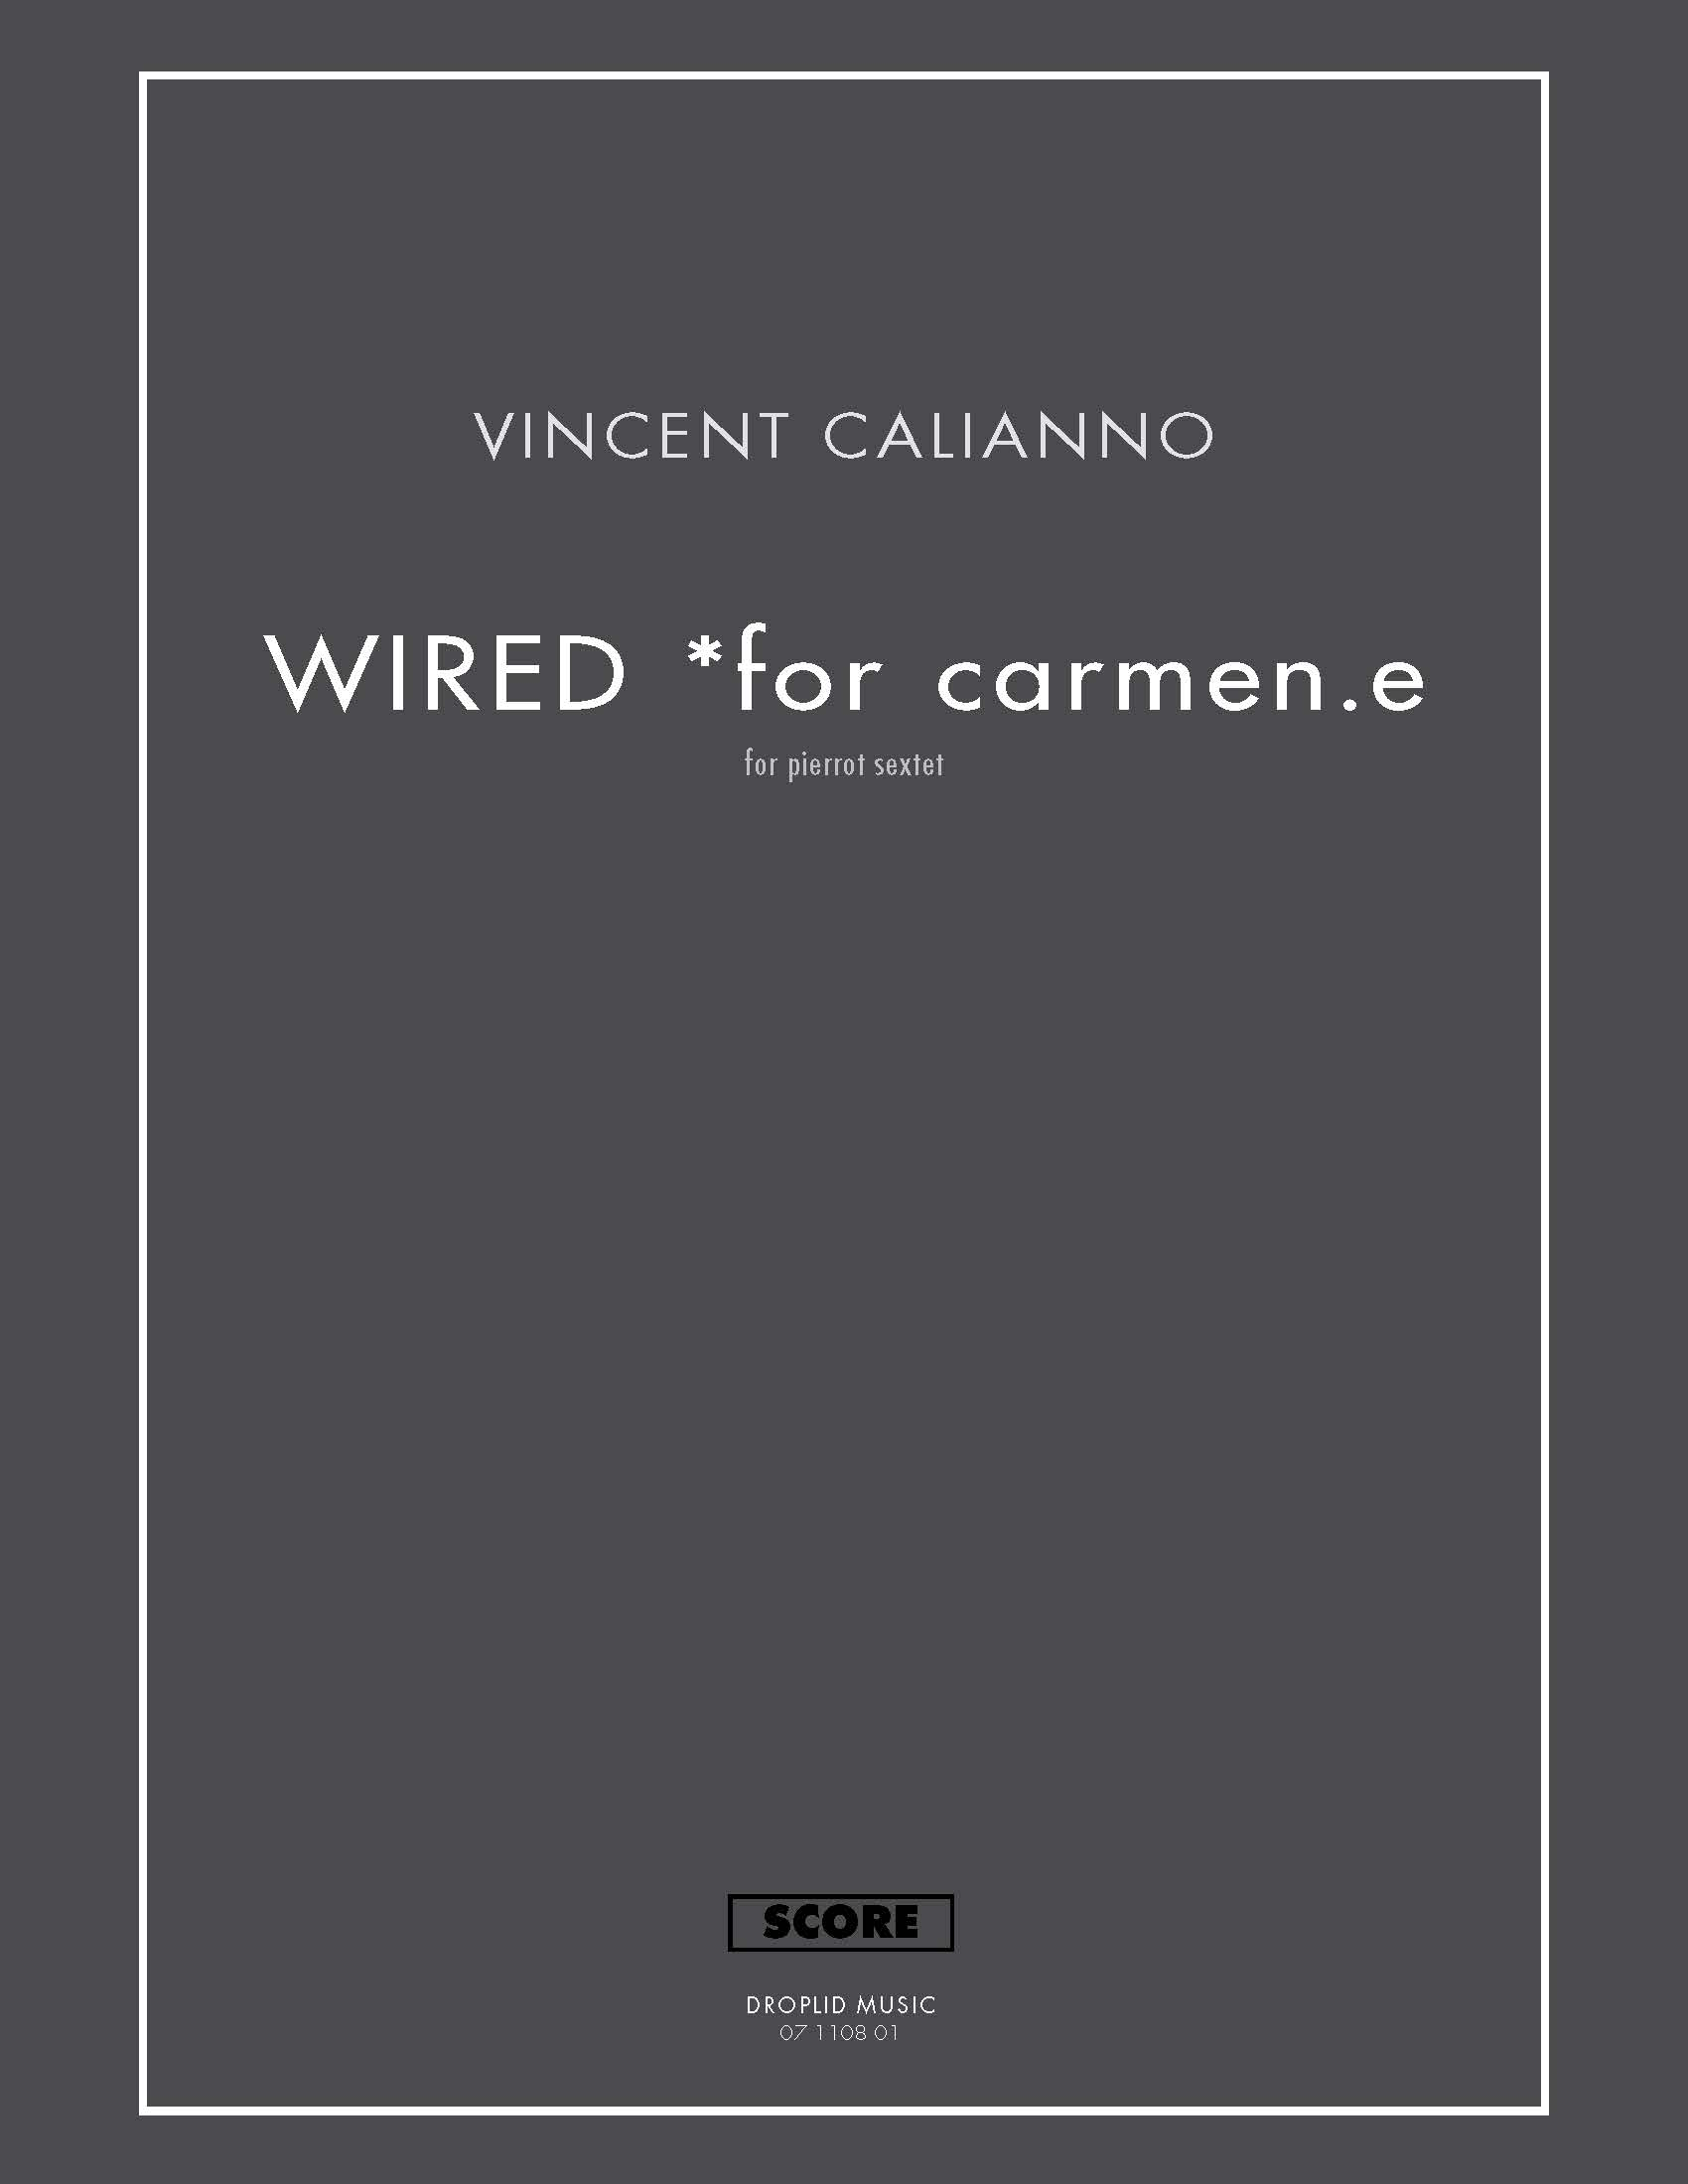 007-01 WIRED_Page_01.jpg